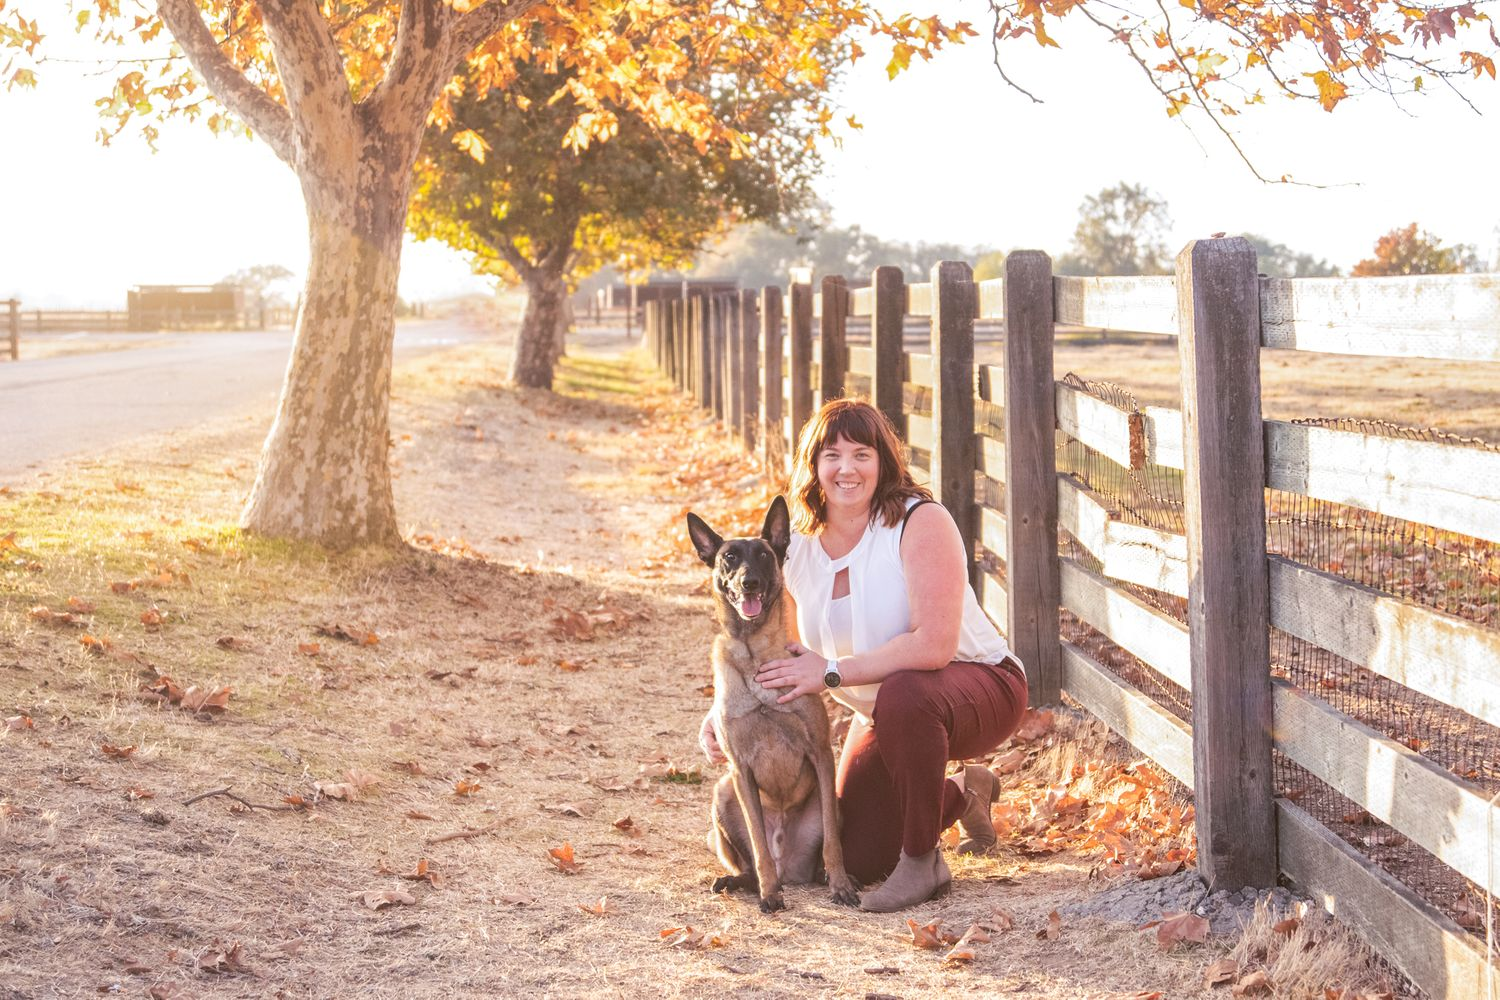 Photographer and her Belgian Malinois, kneeling in front of a fence in the golden sunlight